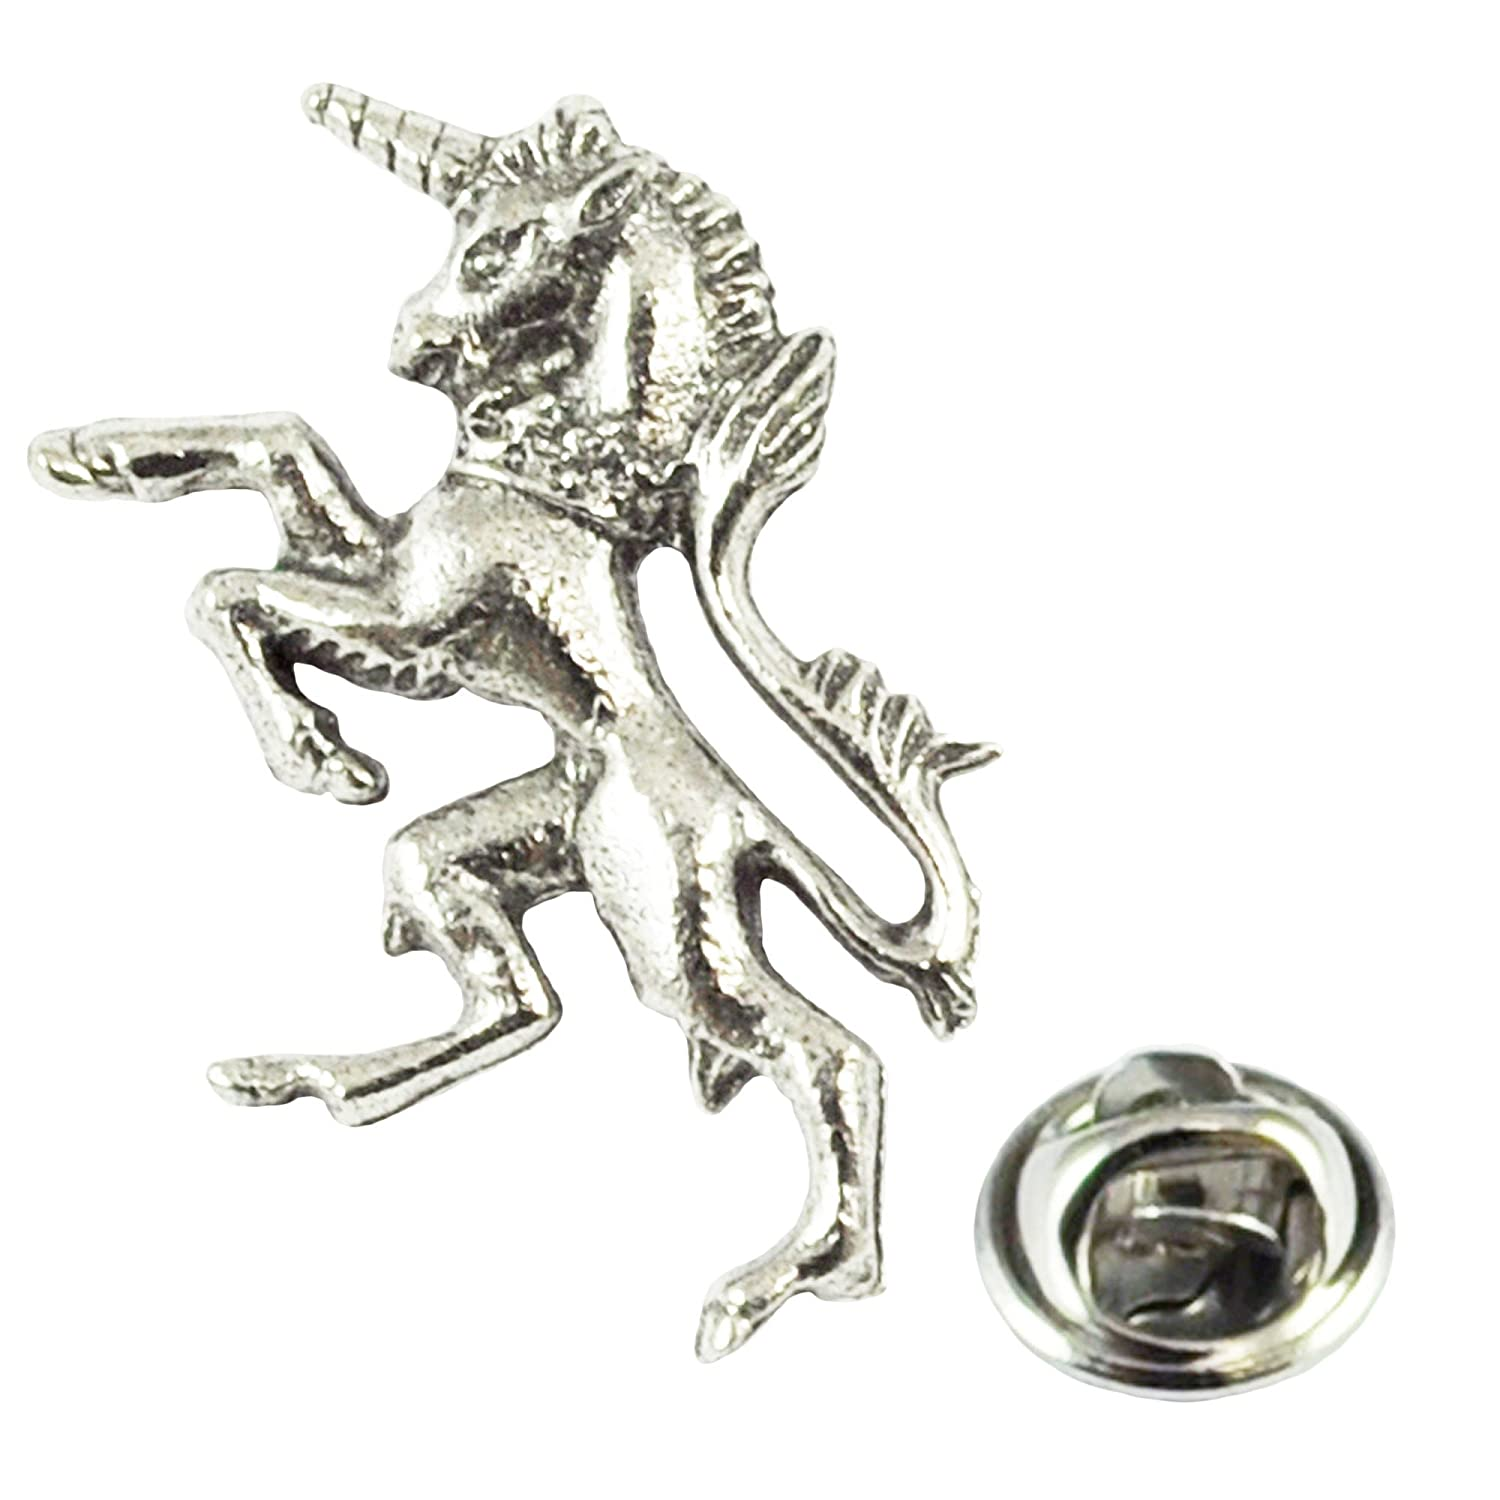 Walleye Fish Handcrafted from English Pewter in the UK Lapel Pin Badge Zander